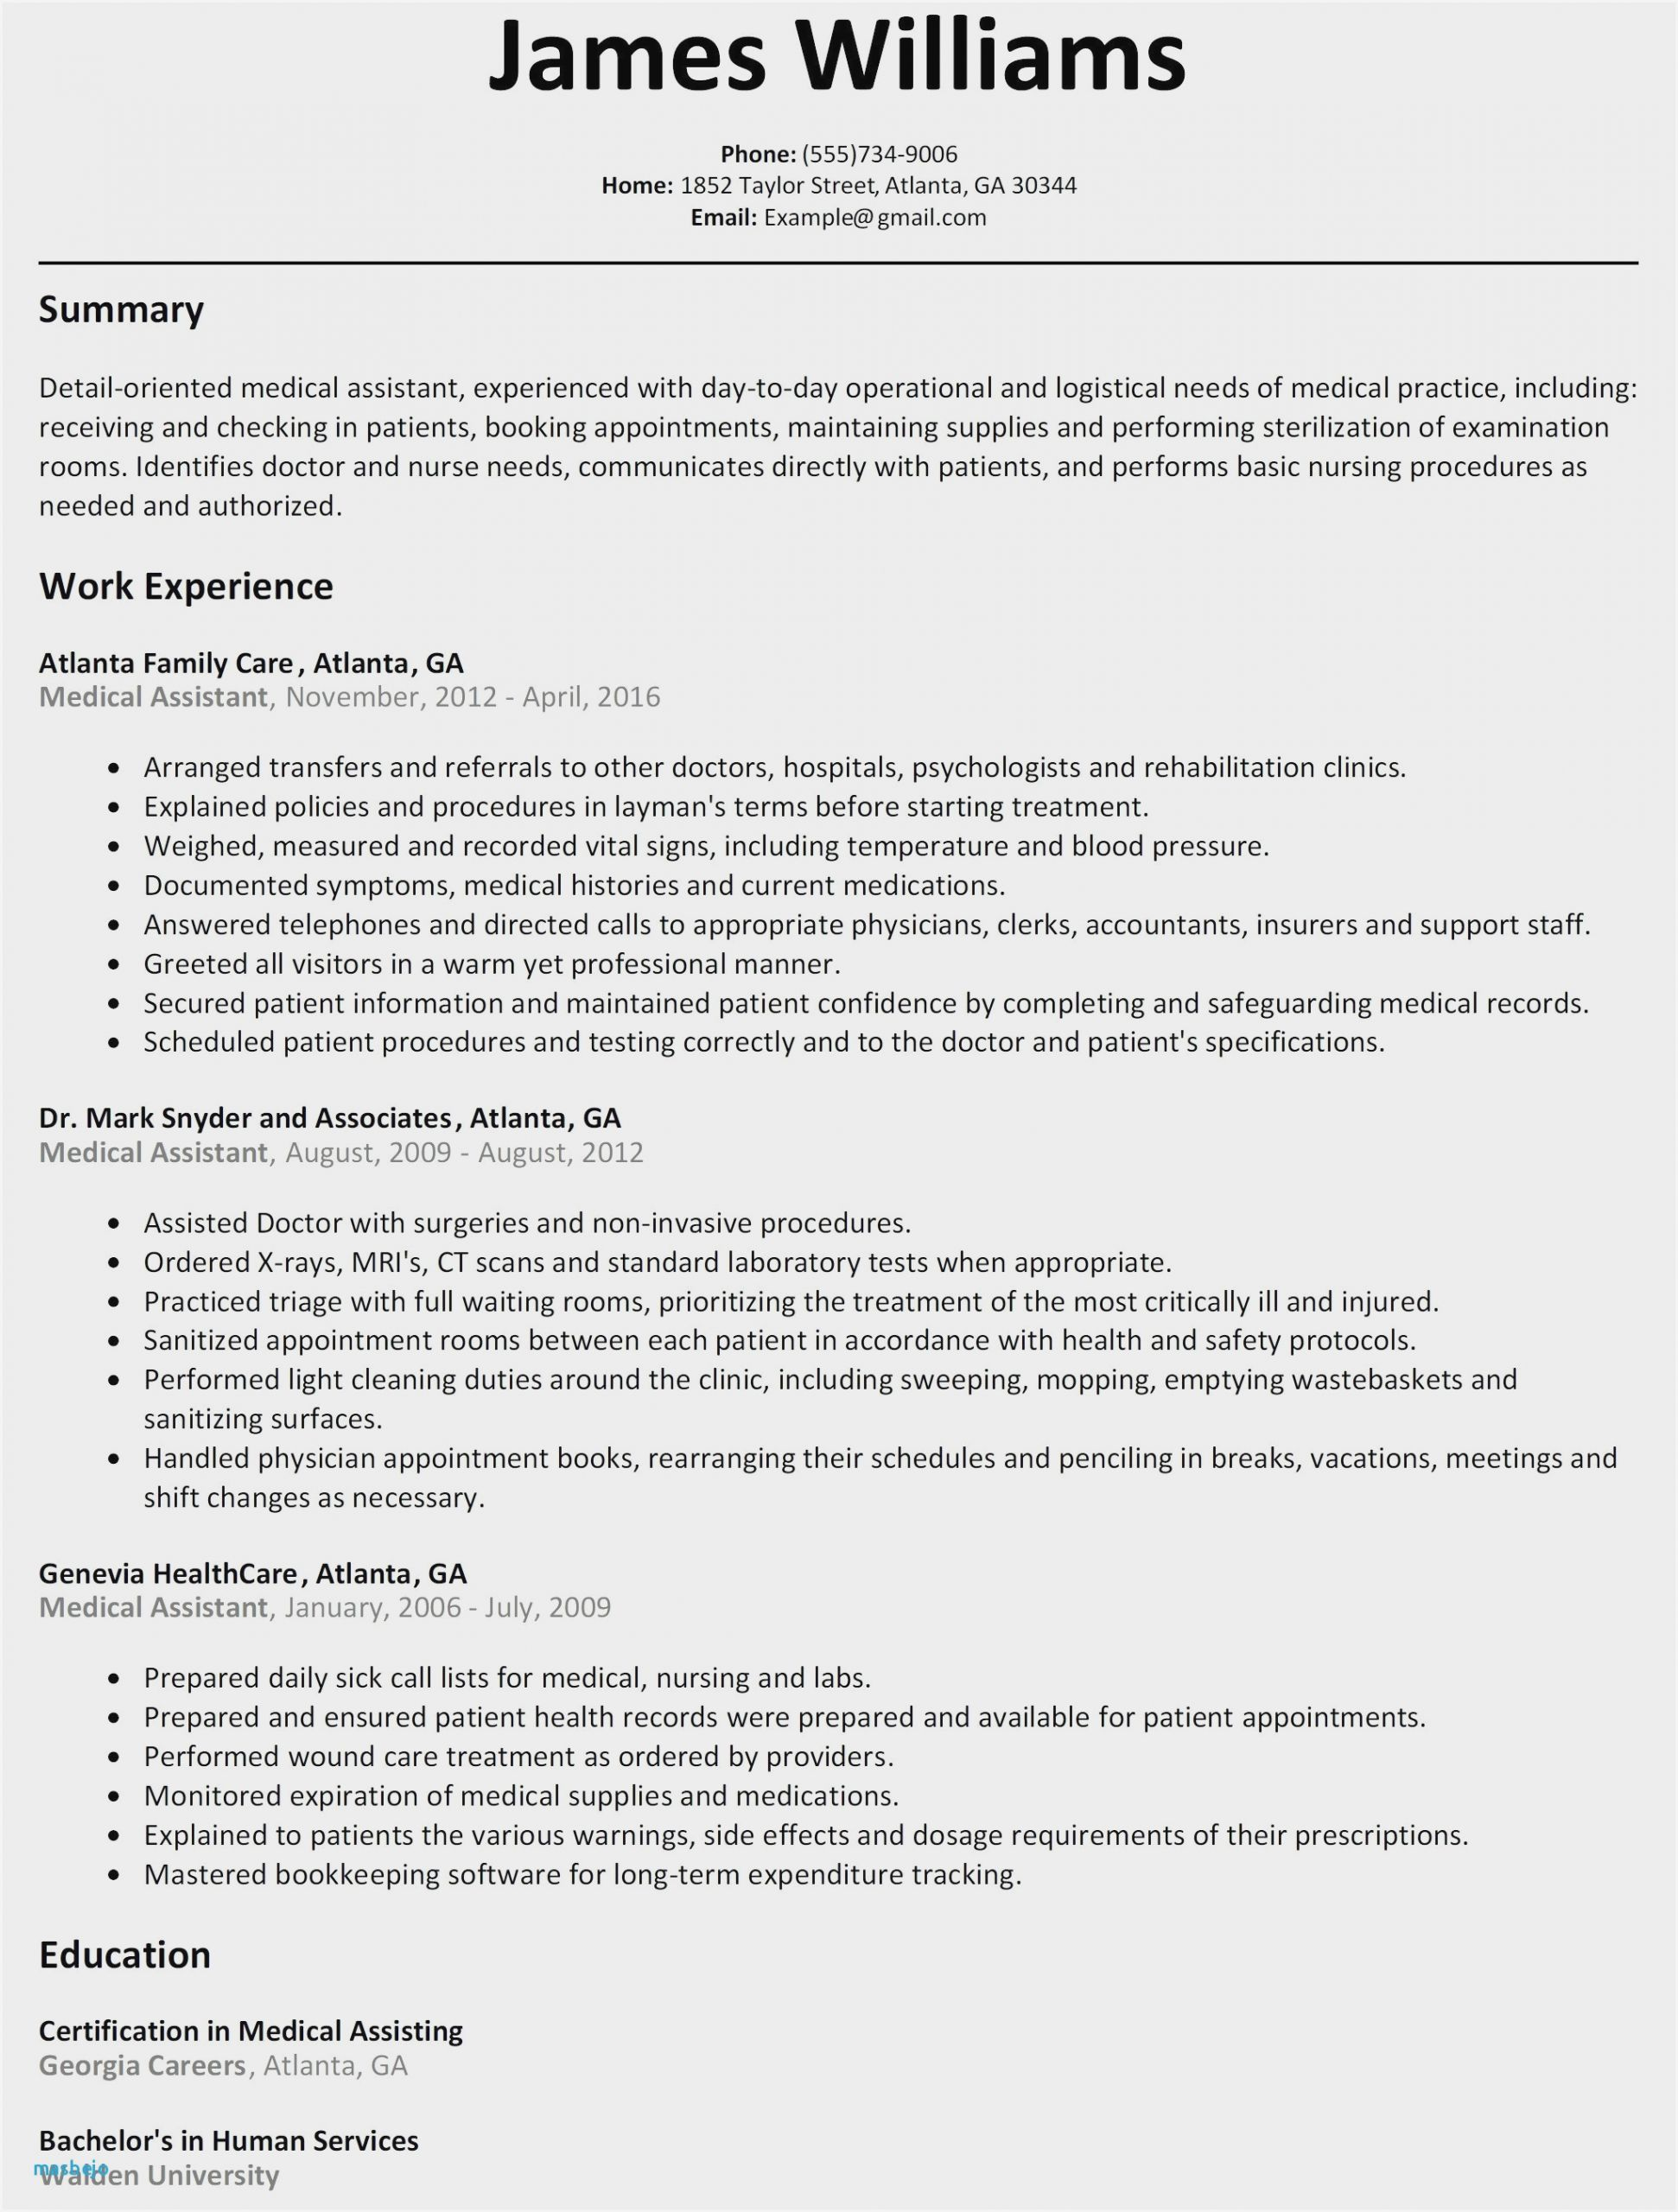 resume objective statement examples nursing sample for medical assistant student scaled Resume Resume Objective For Medical Assistant Student